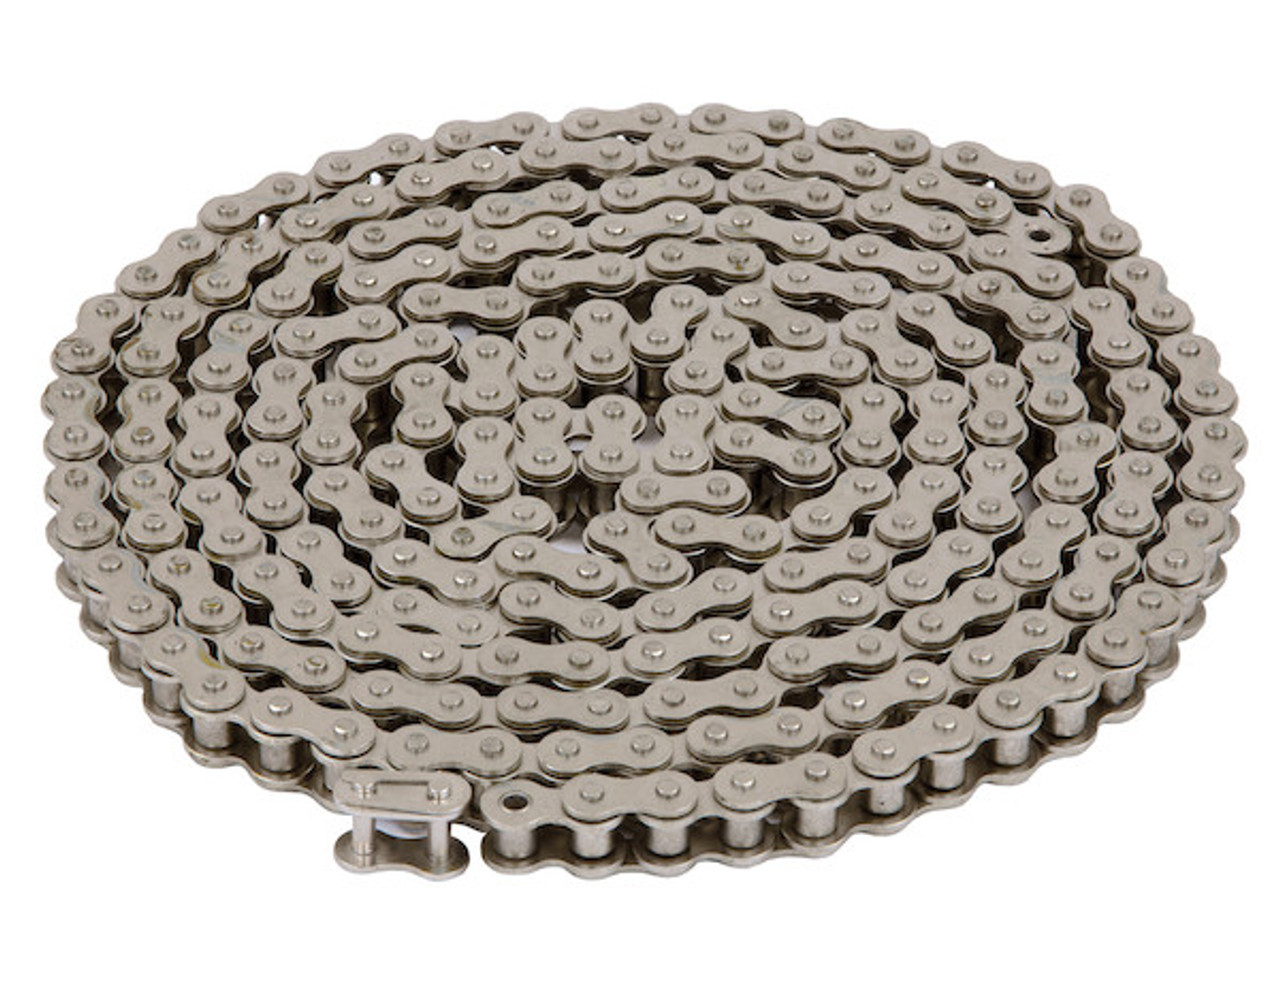 BUYERS SALTDOGG GROUND LEVEL CHAIN 10 FOOT CRANK ARM CHAIN WITH MASTER LINK